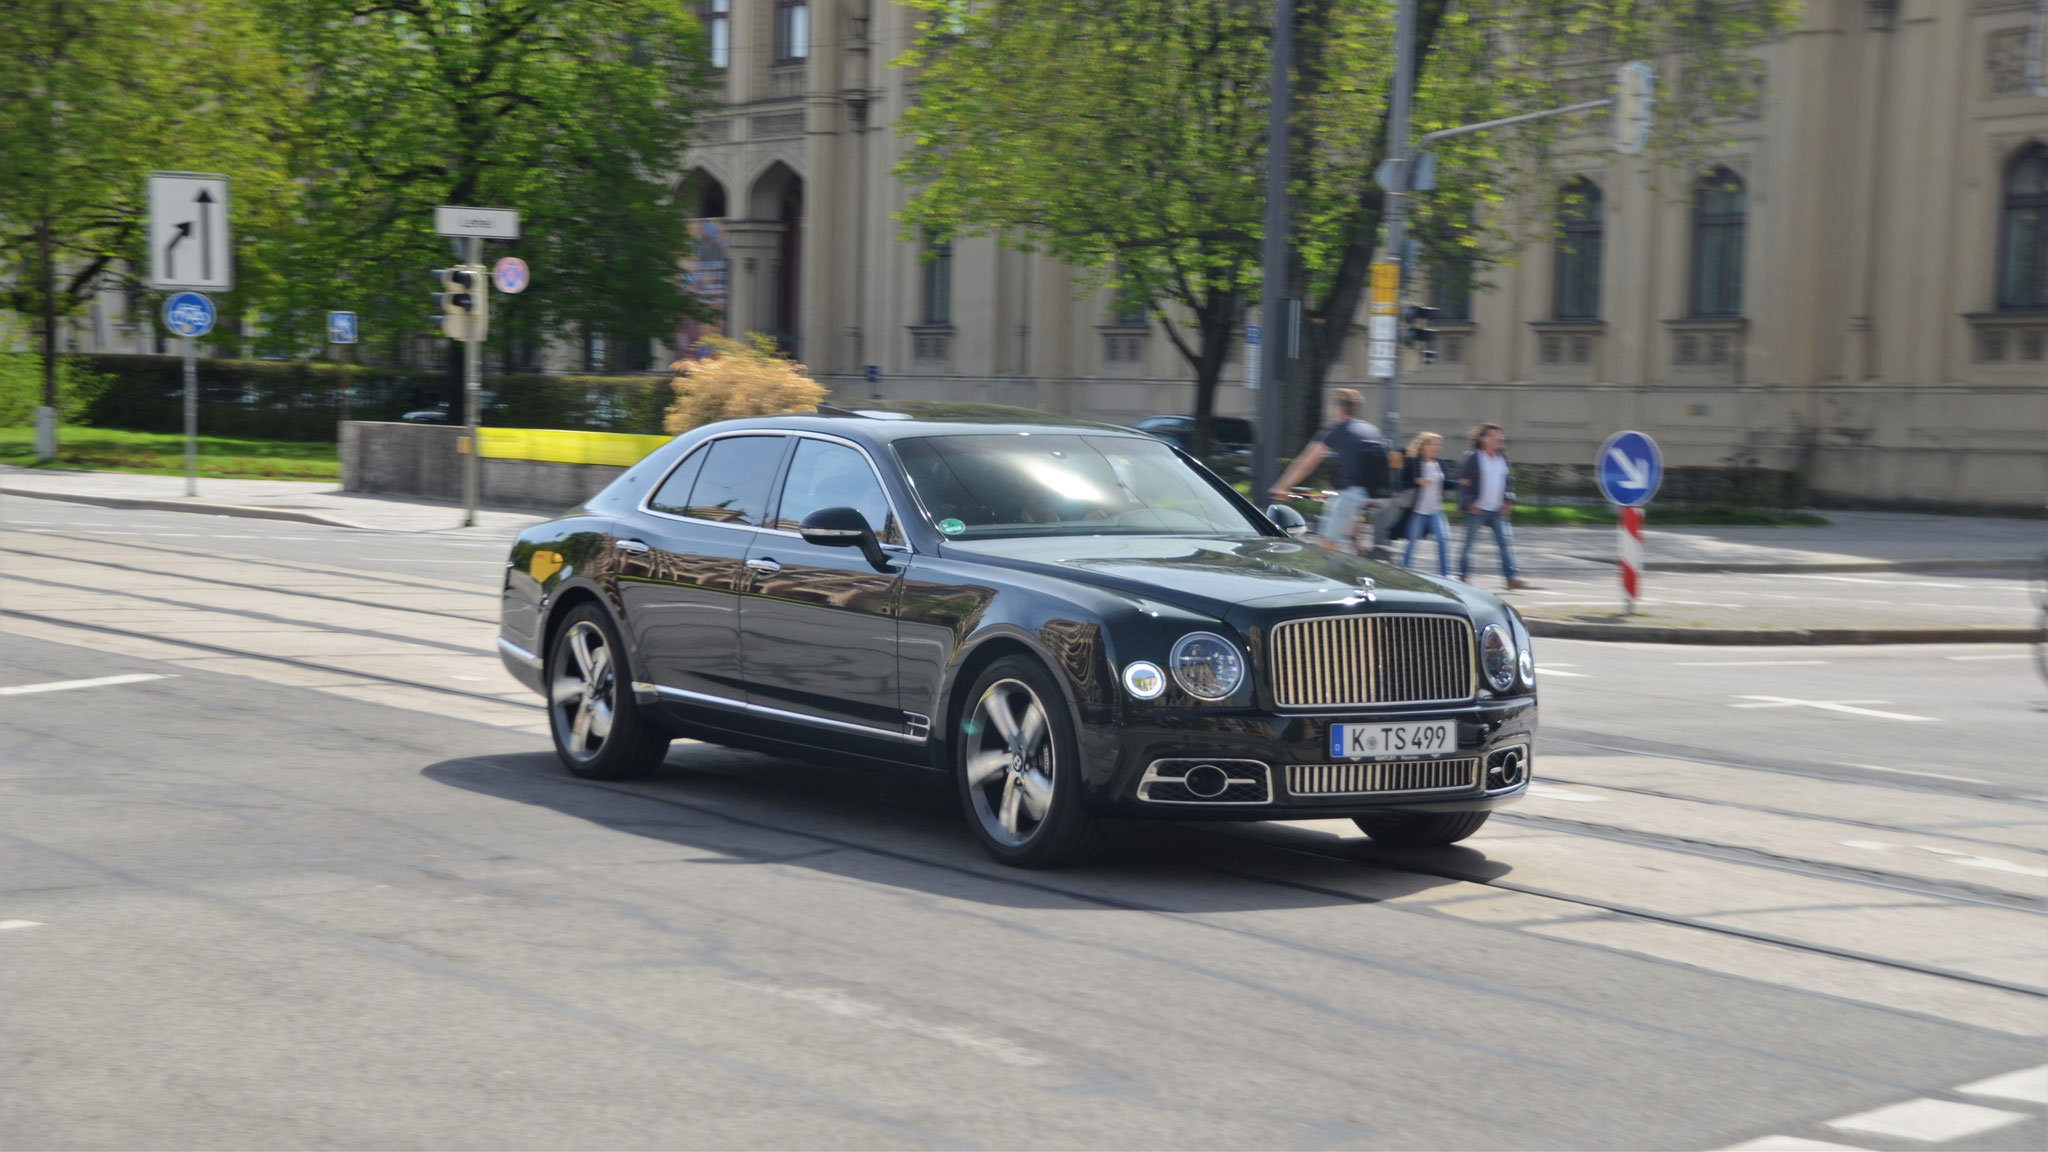 Bentley Mulsanne - K-TS-499